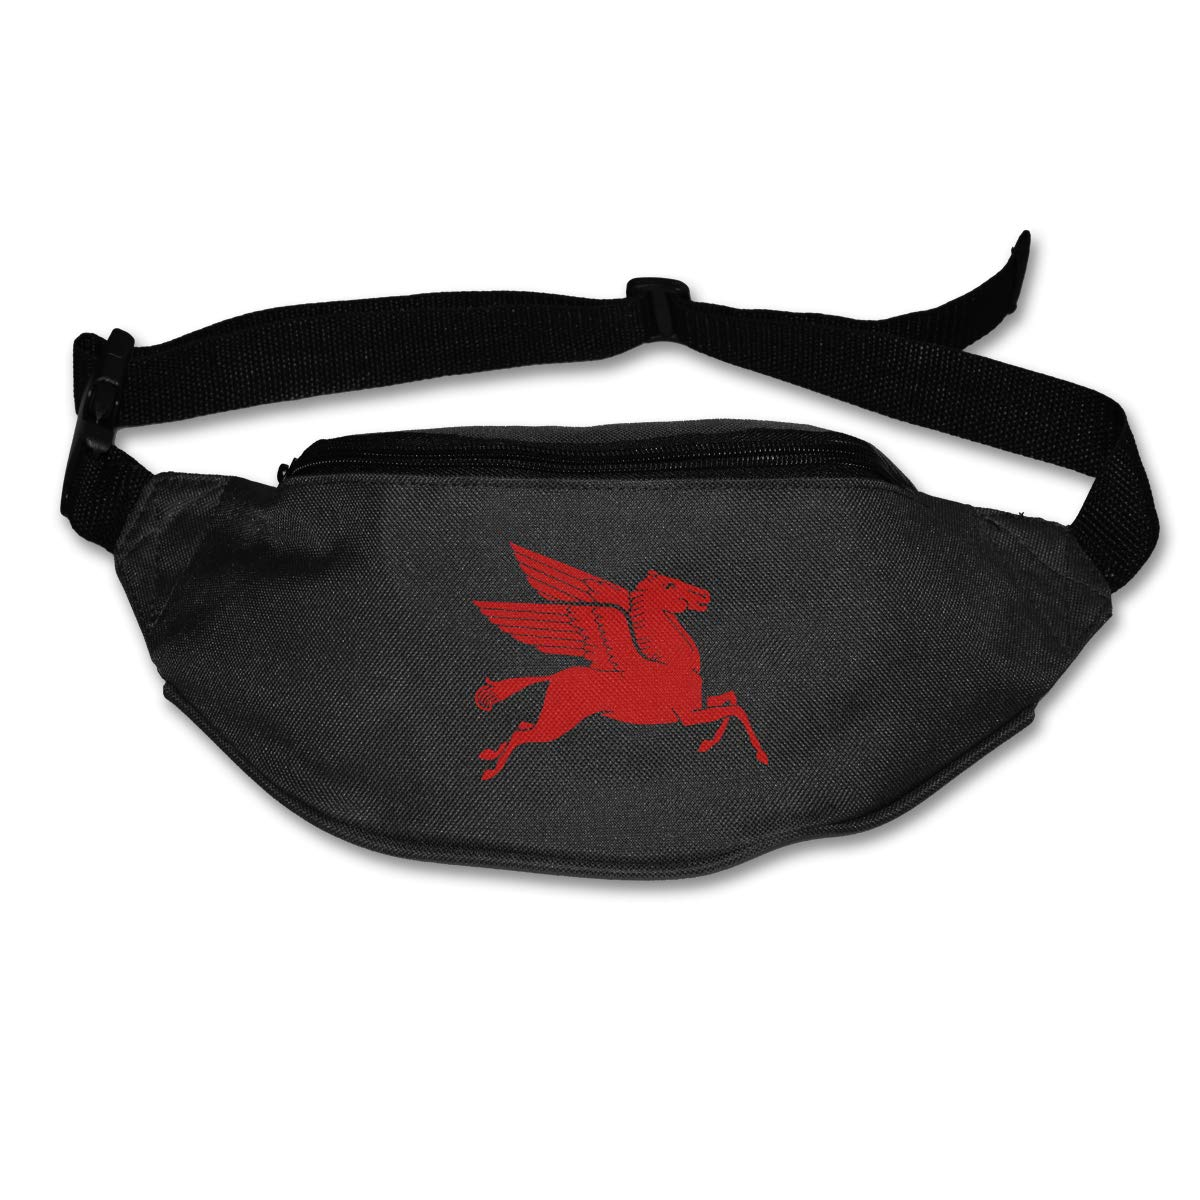 Red Pegasus Sport Waist Pack Fanny Pack Adjustable For Run